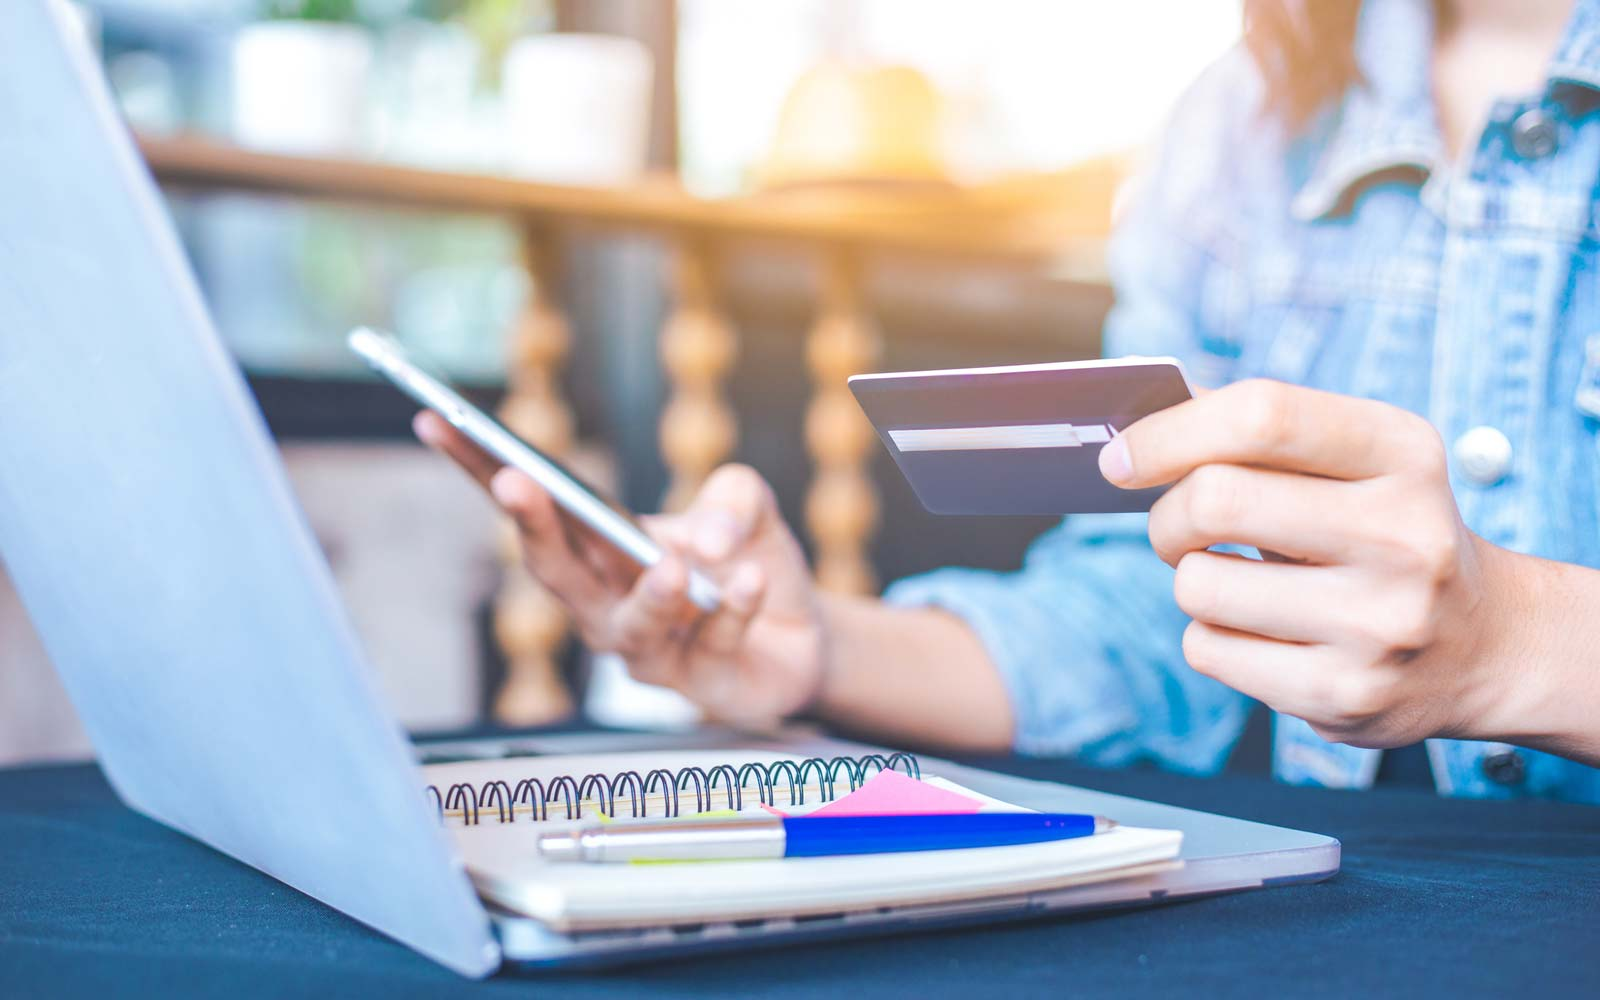 Women hold credit cards and use mobile phones to shopping online.